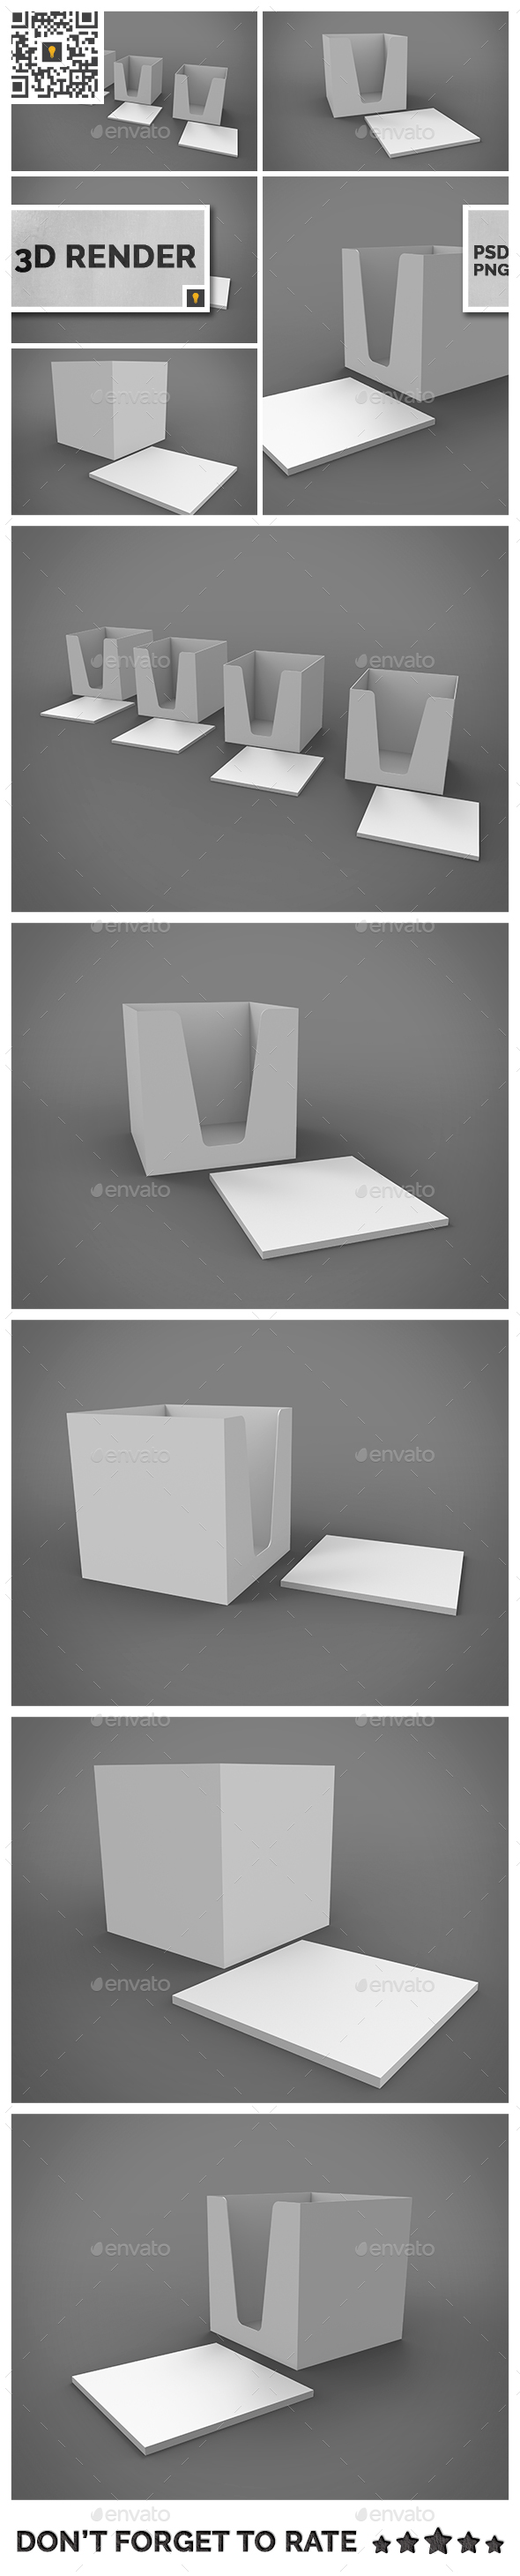 Notepad Holder & Notes 3D Render - Miscellaneous 3D Renders